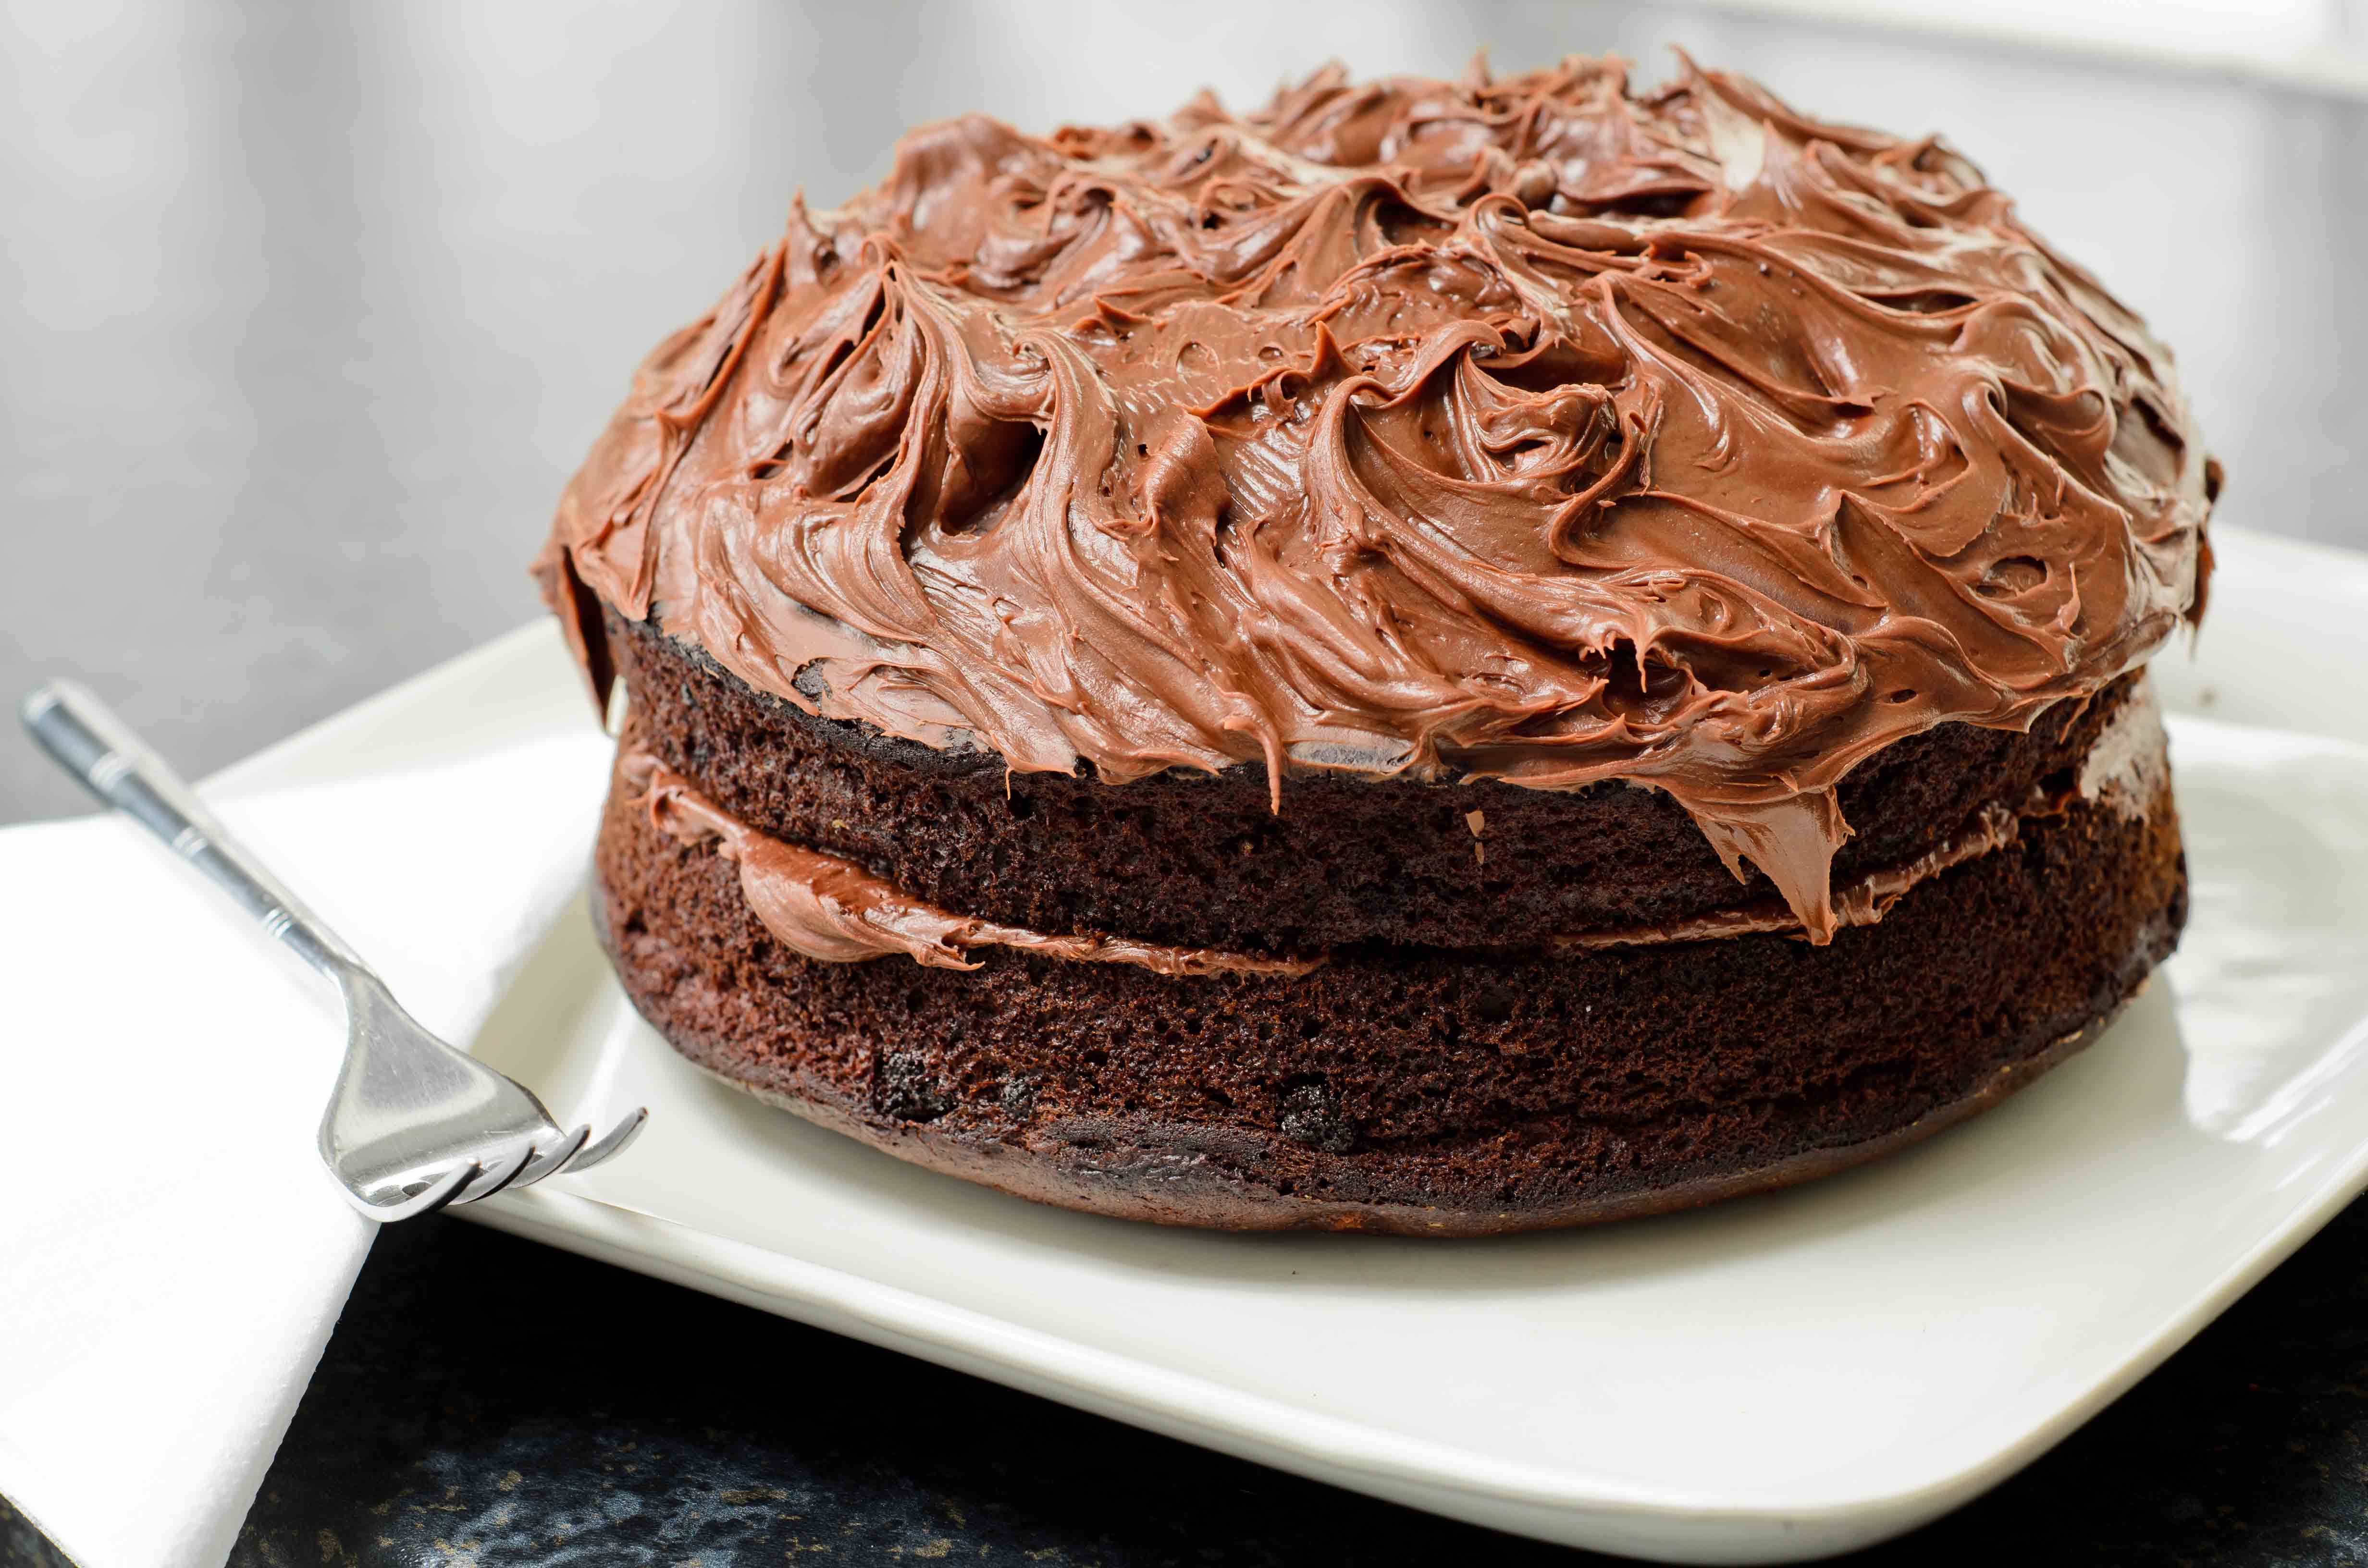 St Patrick's Day recipe – here's how to make a Guinness chocolate cake